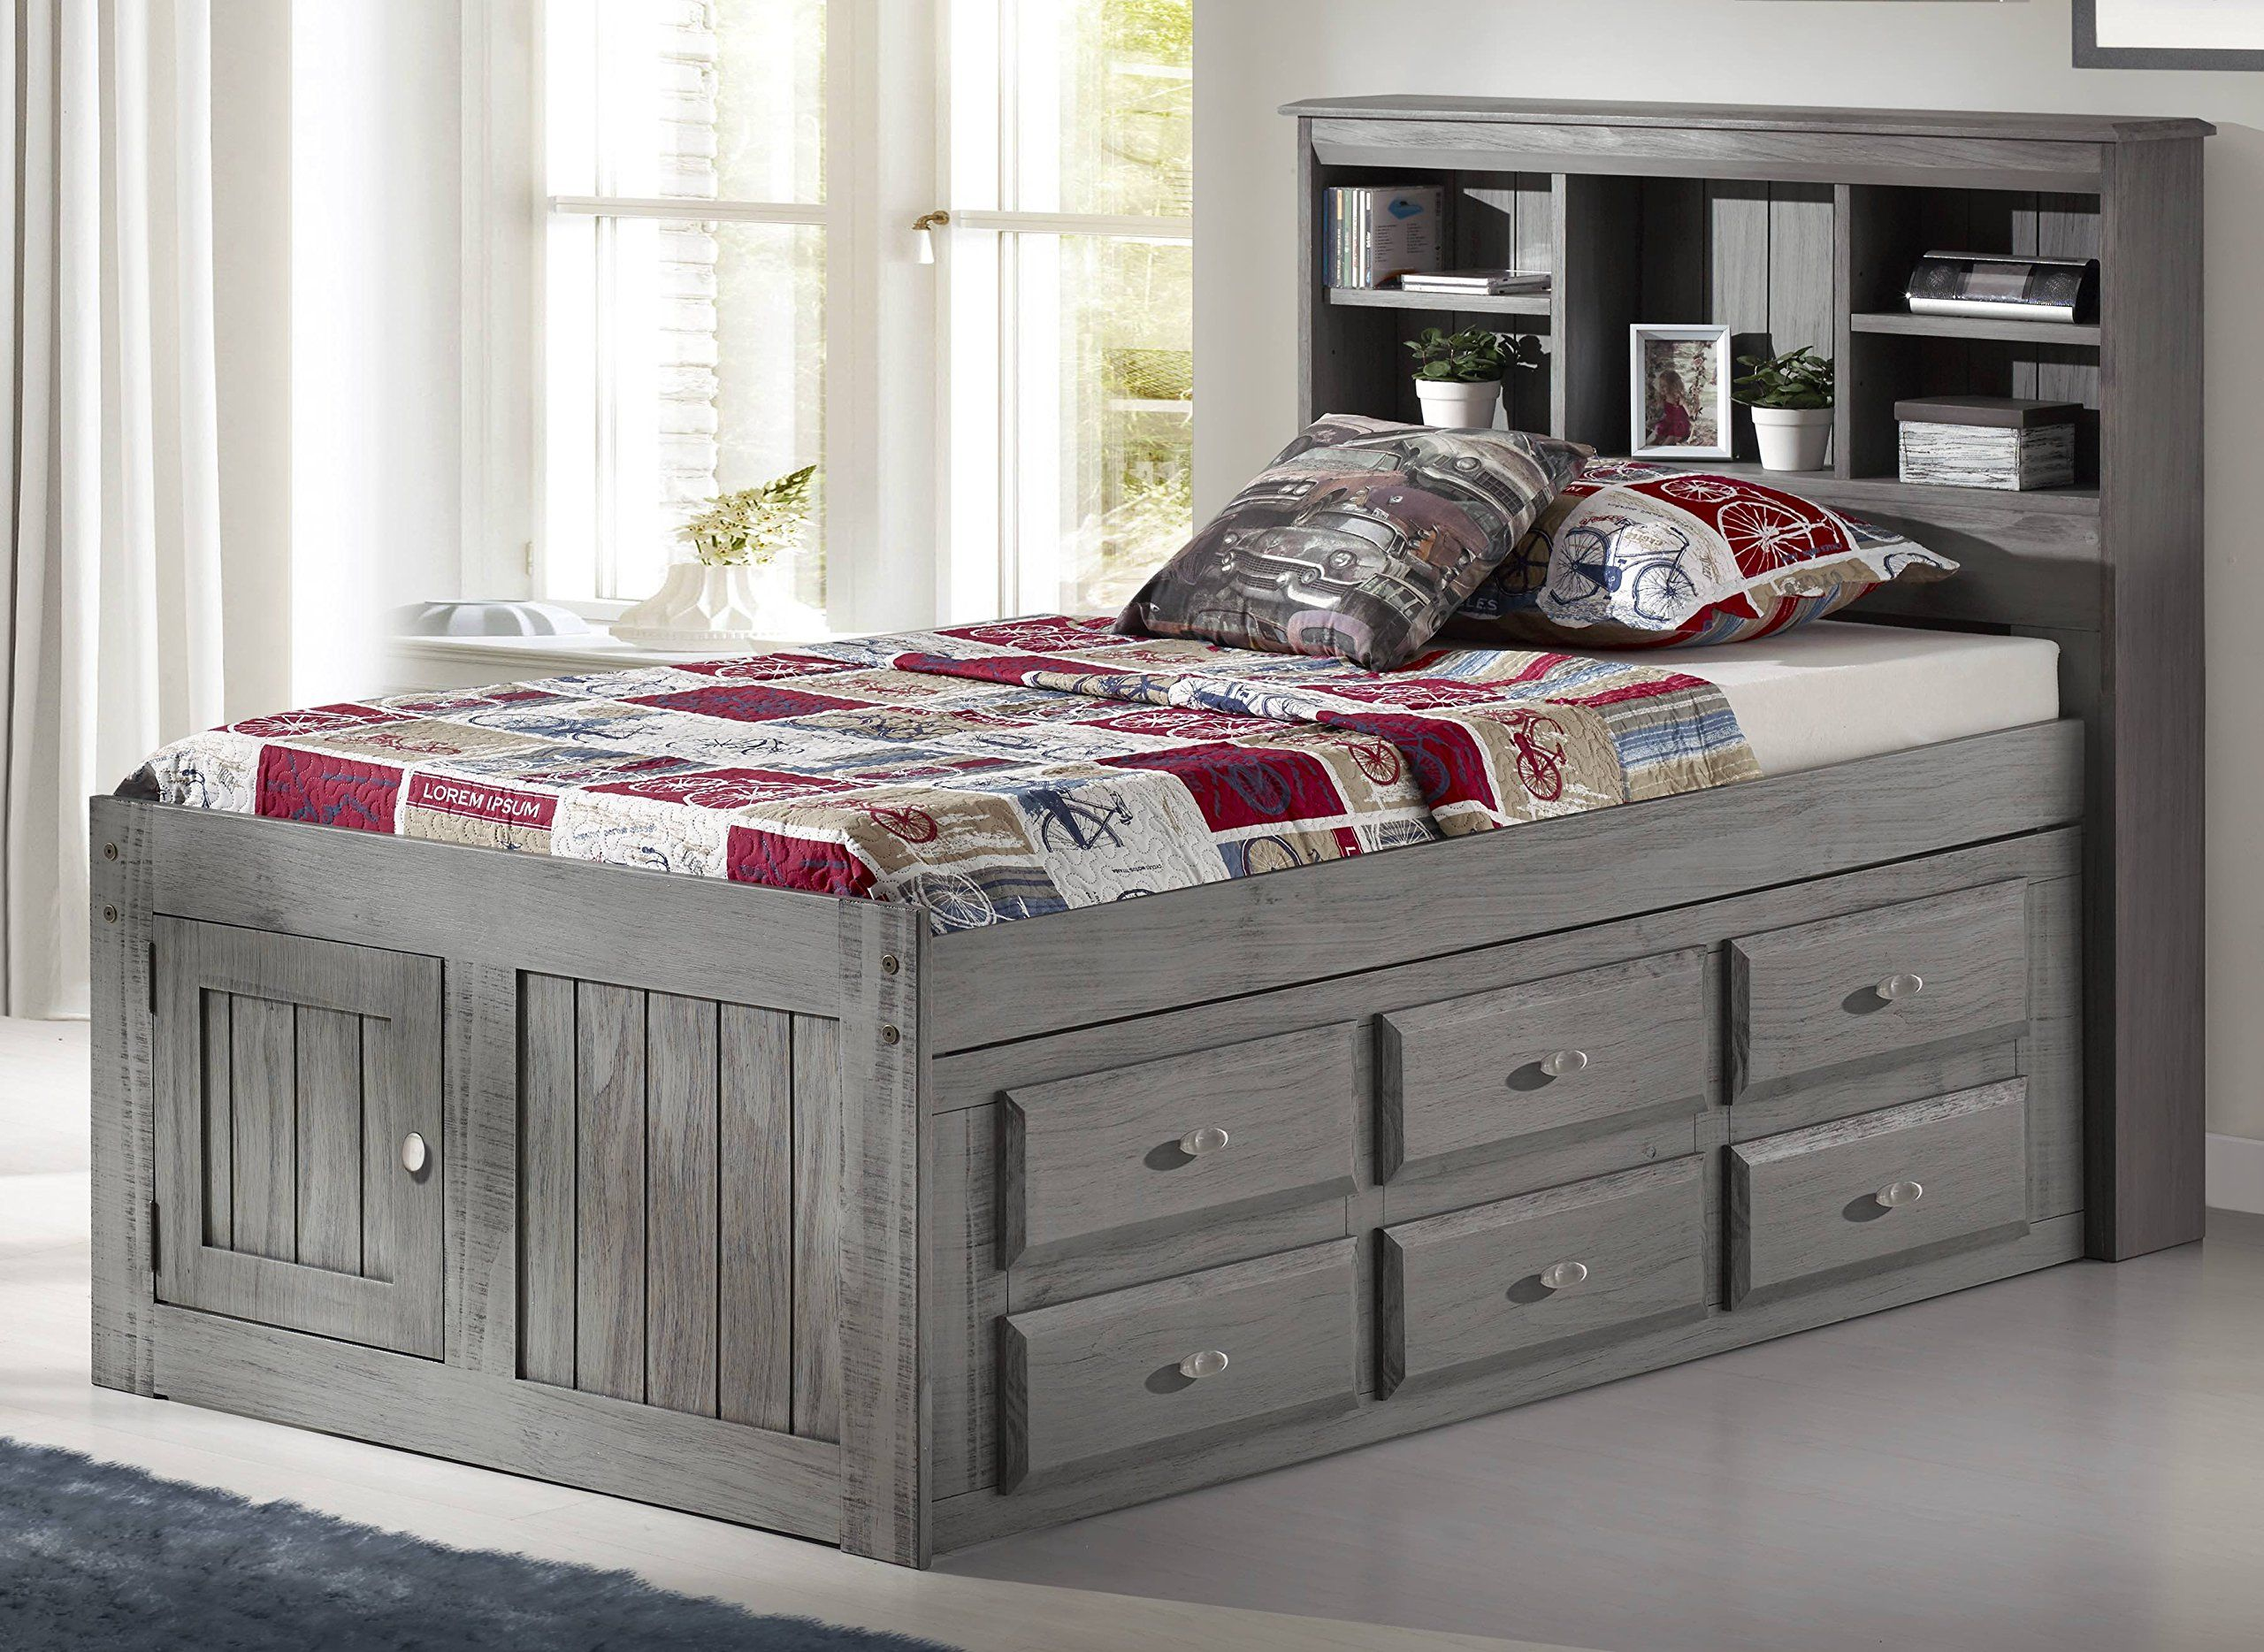 Discovery World Furniture Twin Captains Bed Bookcase With 6 Drawers And Entertainment Dresser In Charcoal Fin In 2020 Furniture Bedroom Sets For Sale Twin Bedroom Sets